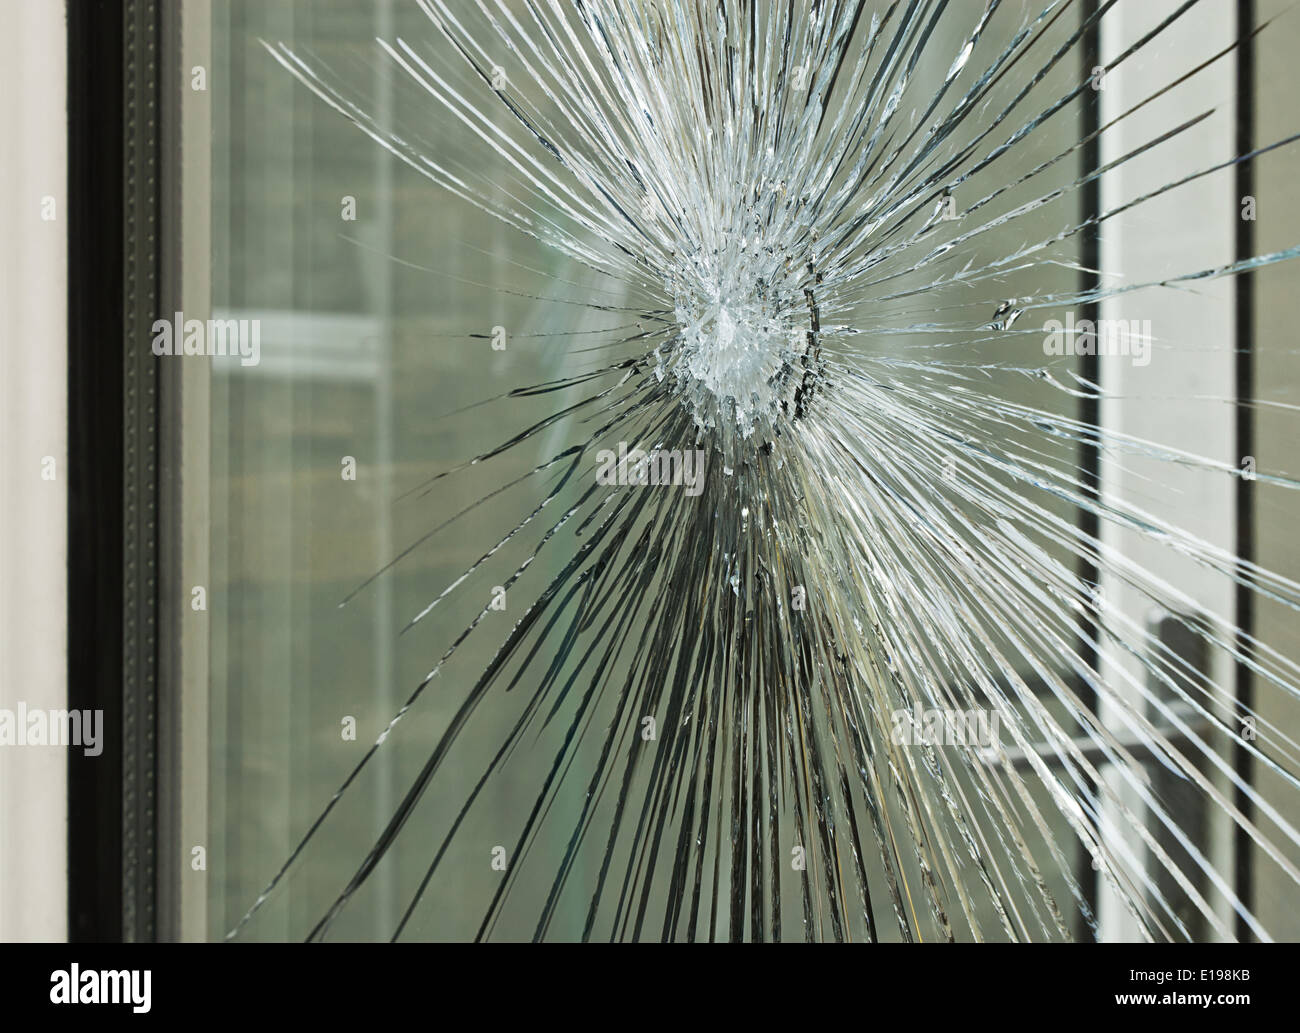 Broken glass window smashed by accident or after a break in, great for an insurance claim. - Stock Image